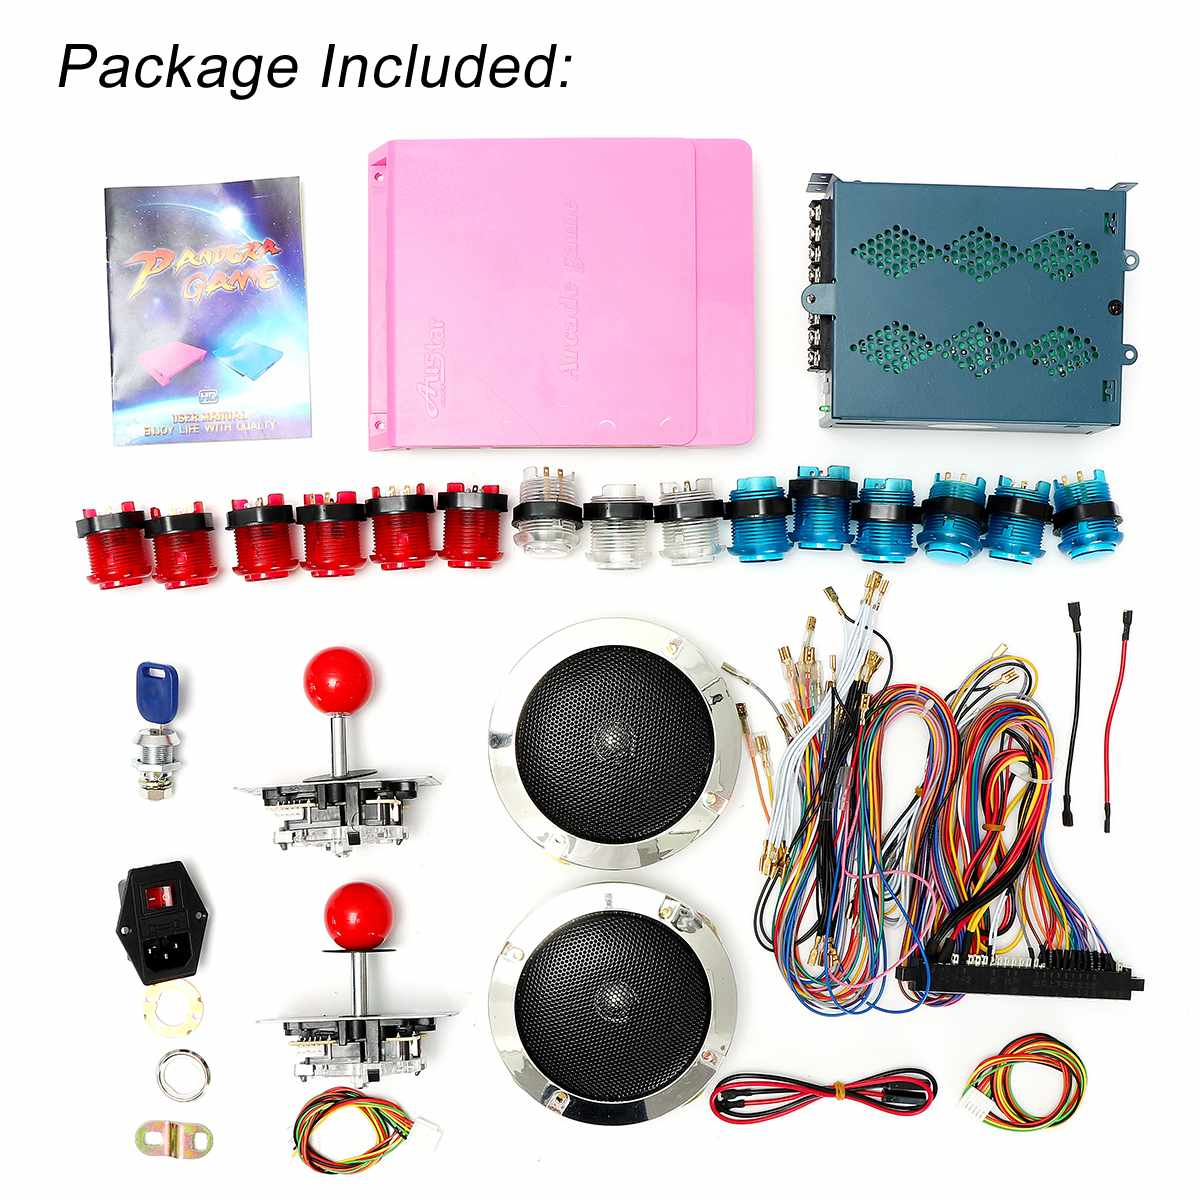 Box 5s 1299 in 1 Classic Box Arcade DIY Game Box Bundles kit With Jamma Harness Push Button Joystick and Lock Coin Operated GameBox 5s 1299 in 1 Classic Box Arcade DIY Game Box Bundles kit With Jamma Harness Push Button Joystick and Lock Coin Operated Game